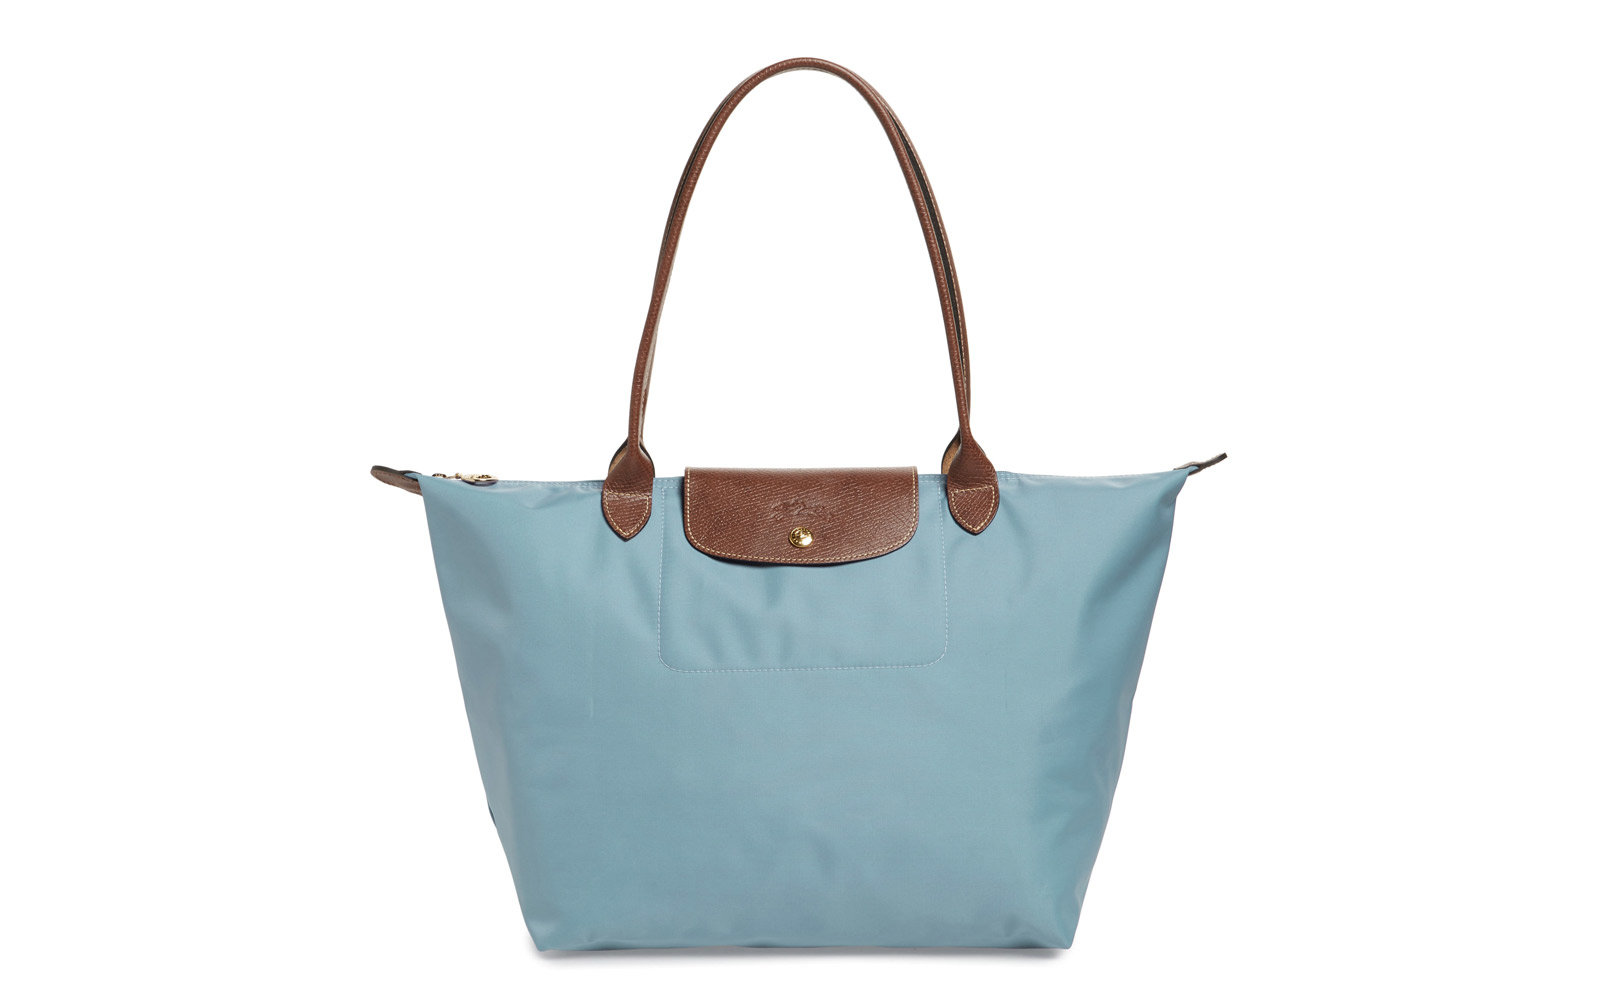 The Best Travel Tote Bags Leisure 6 In 1 Secret Pouch Bag Organiser Bgo 15 A Touch Of Color Longchamp Large Le Pliage